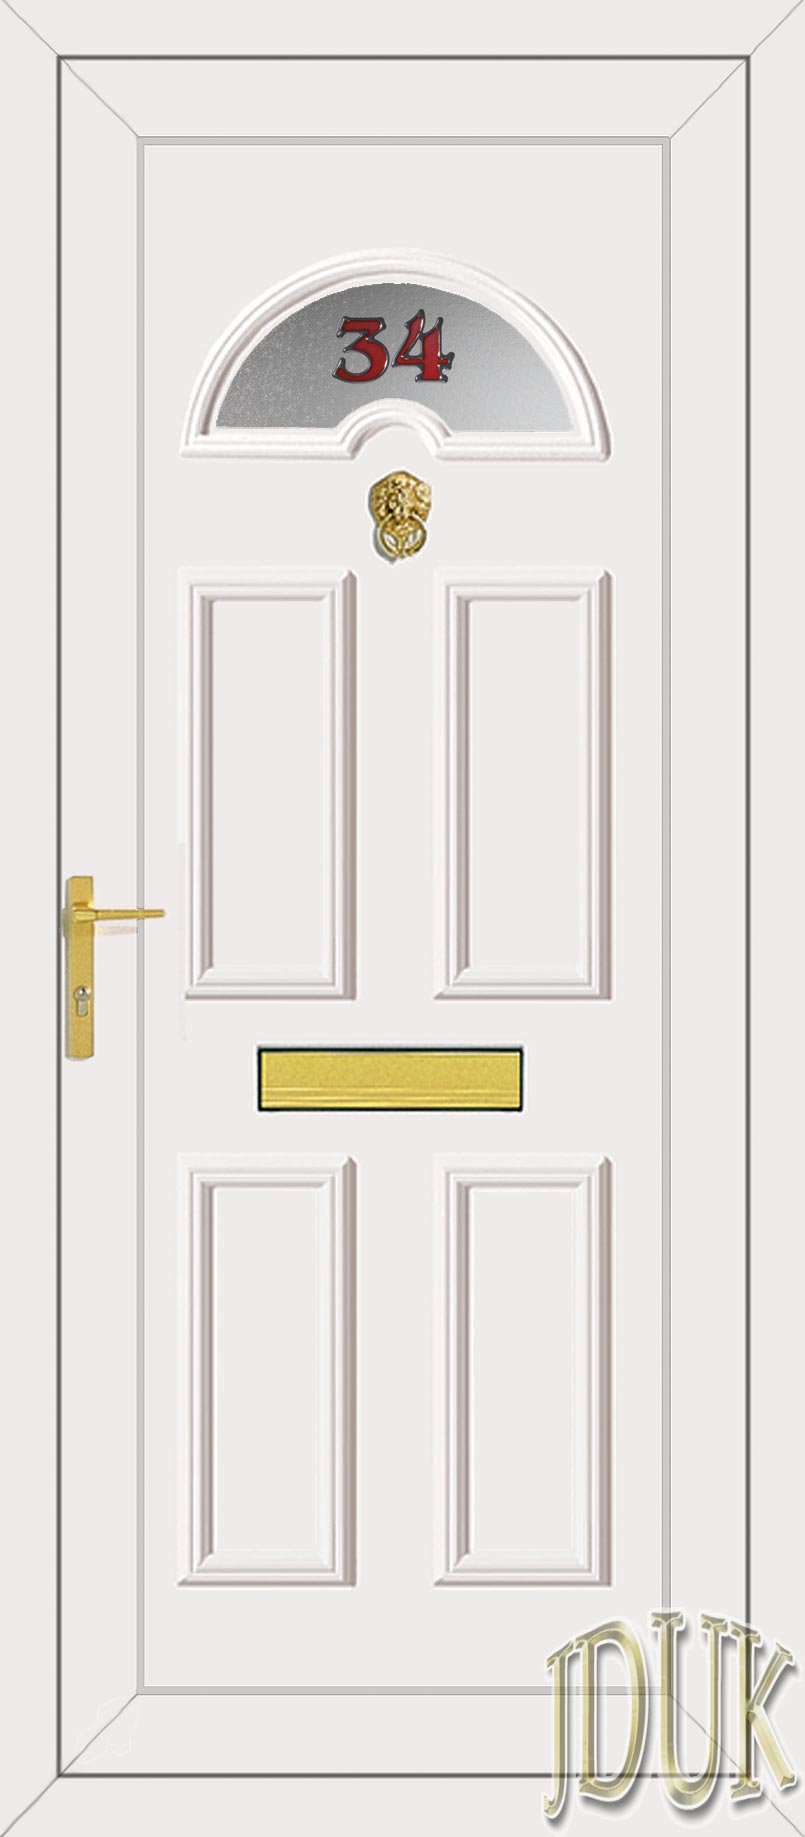 Carter one house number upvc front door for Upvc front doors